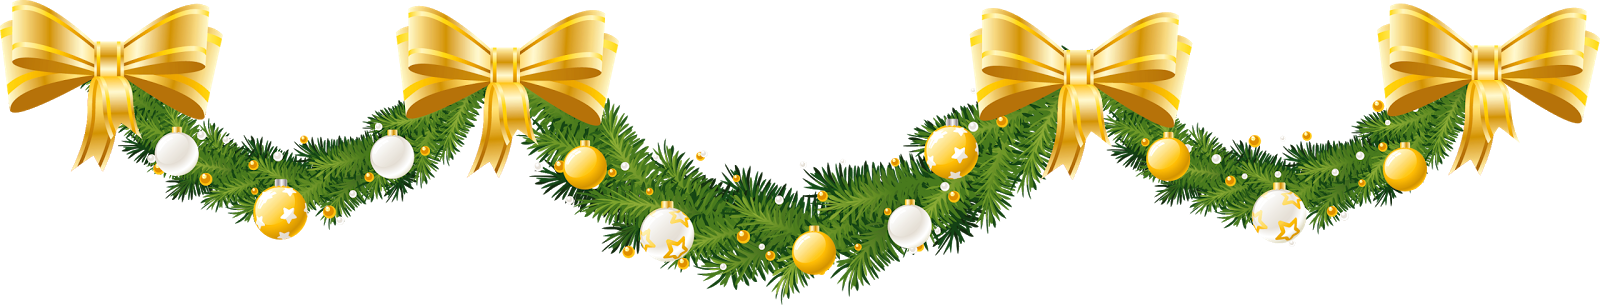 Christmas lunch at parklands resort mudgee 2016 tickets for X mas decorations png